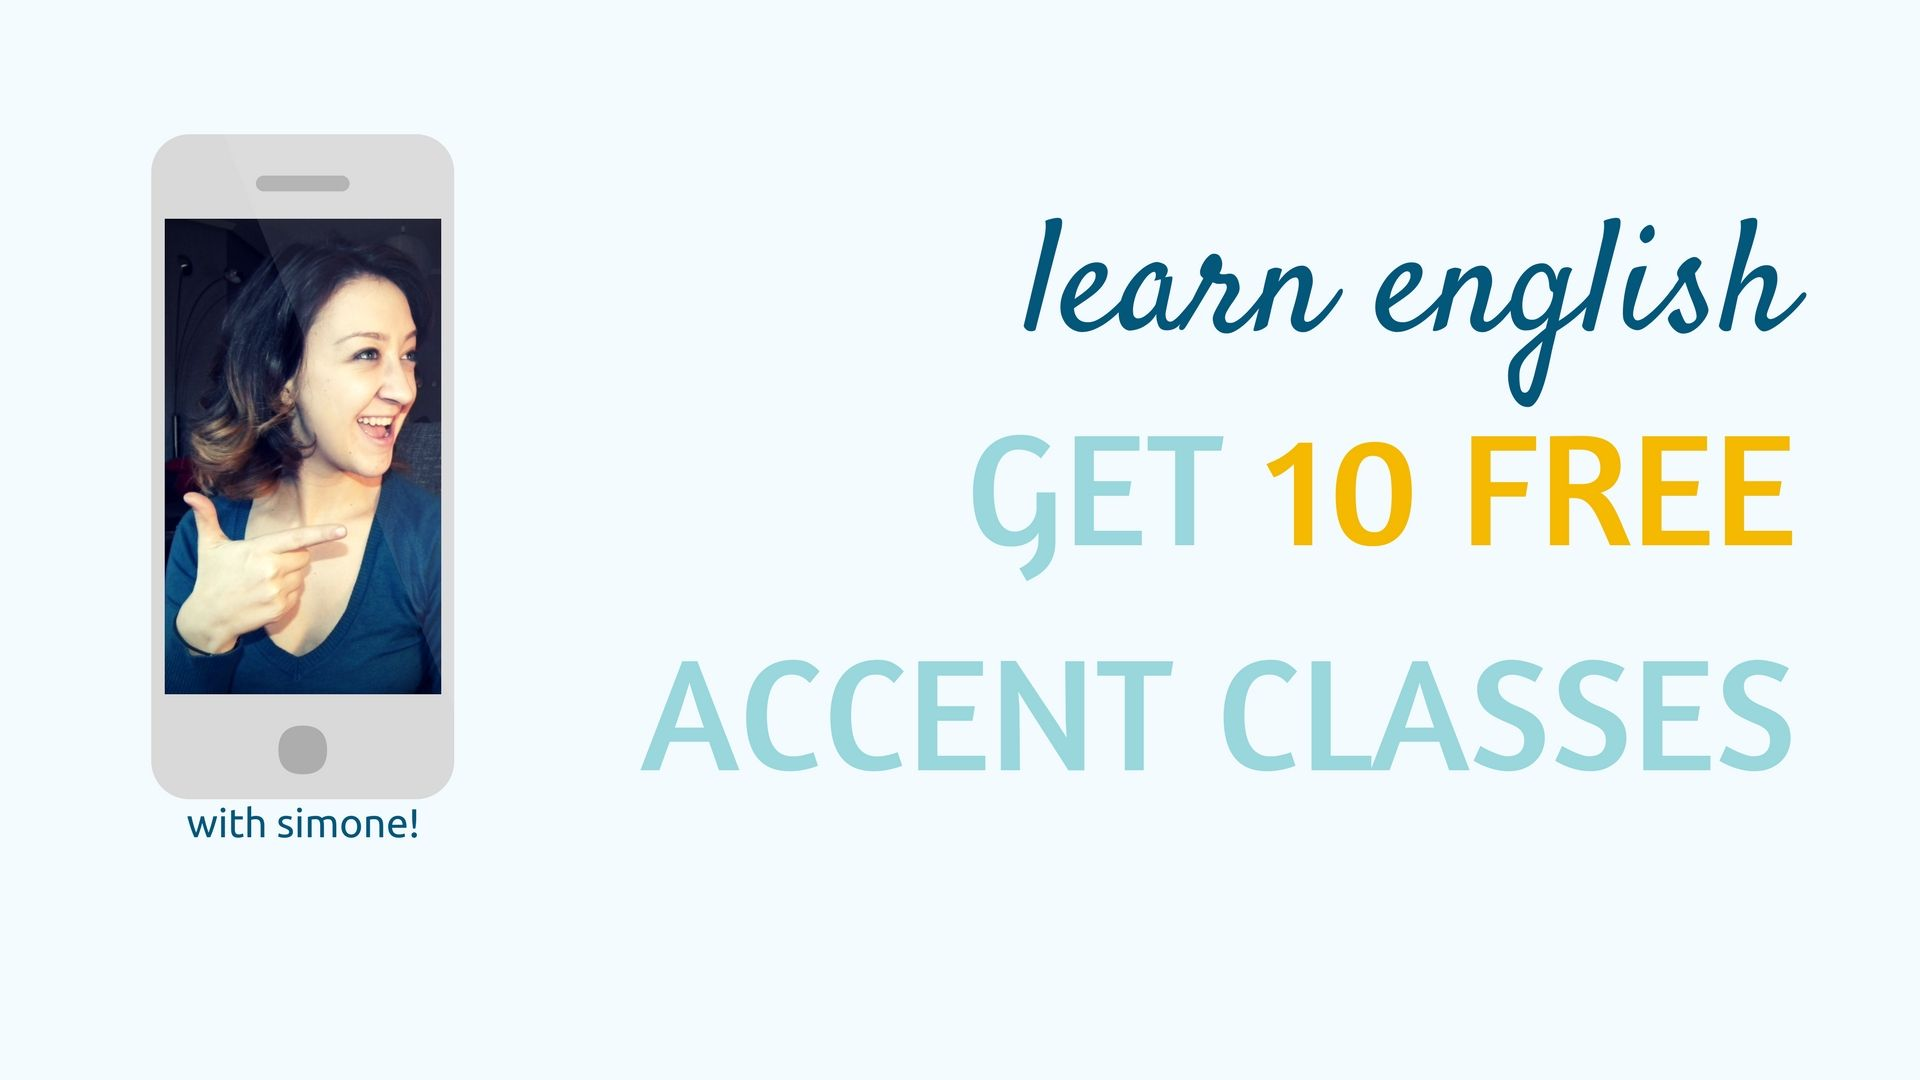 Enter to win 10 free classes to improve your accent